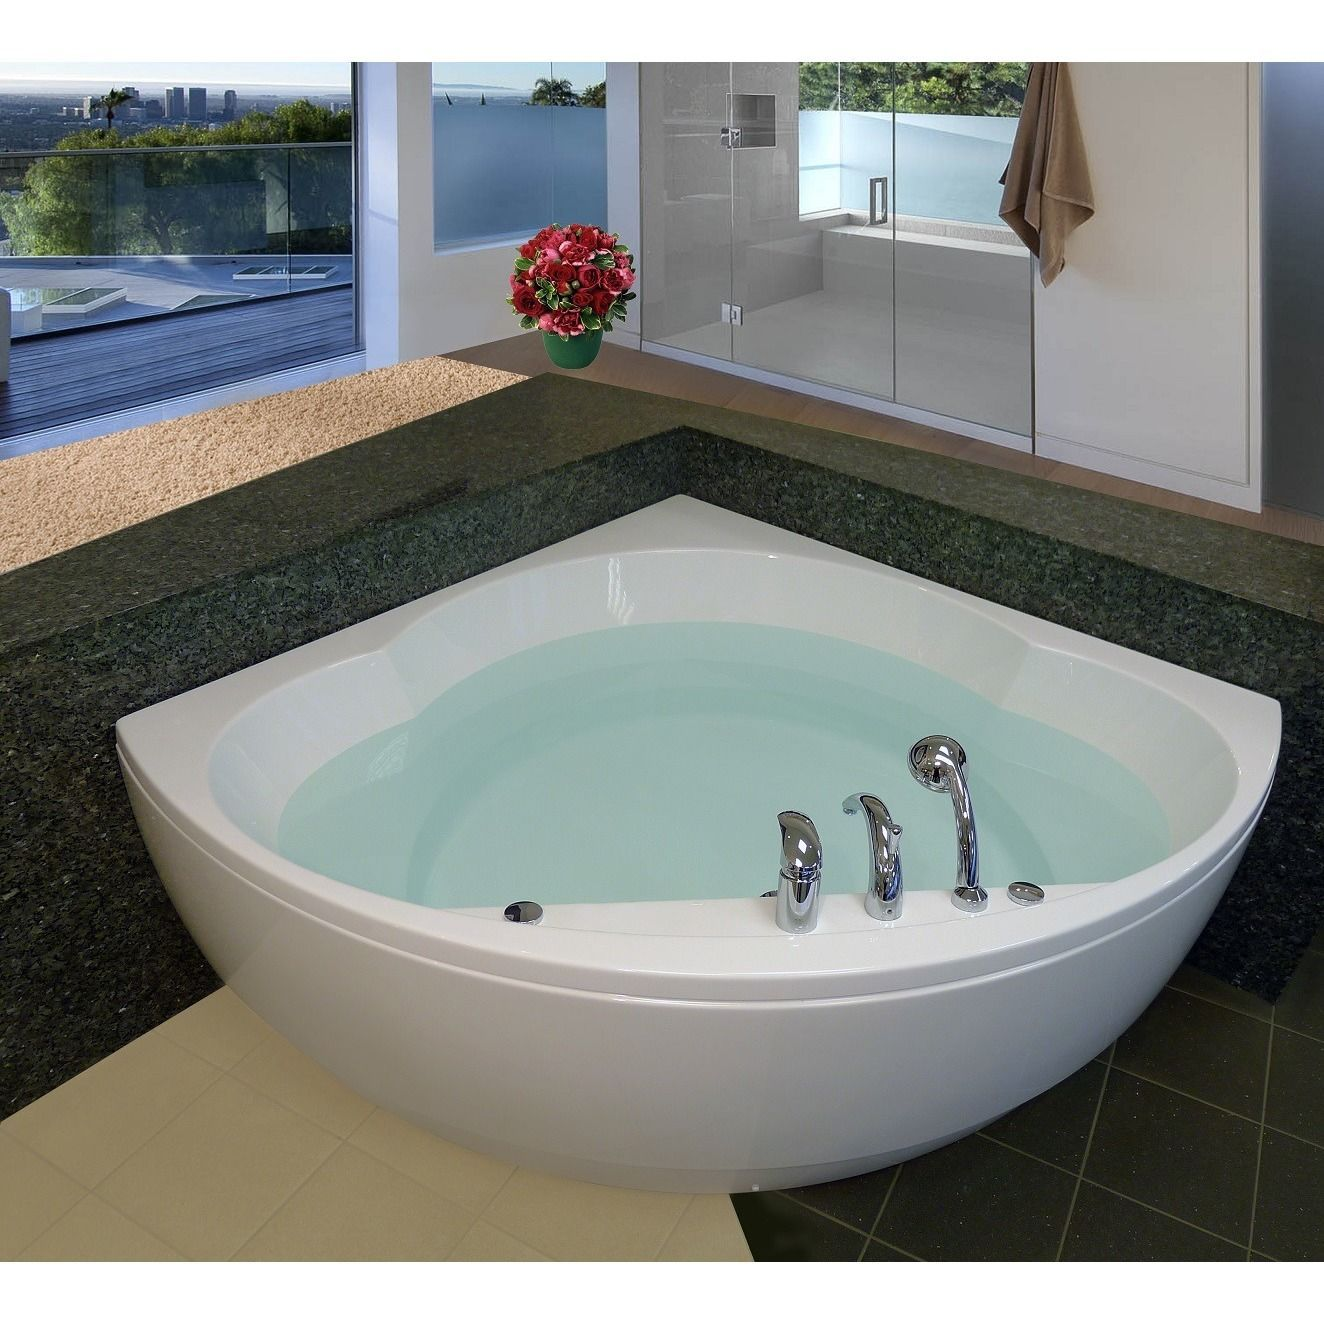 Aquaticas Cleopatra corner tub is made from premium acrylic material ...